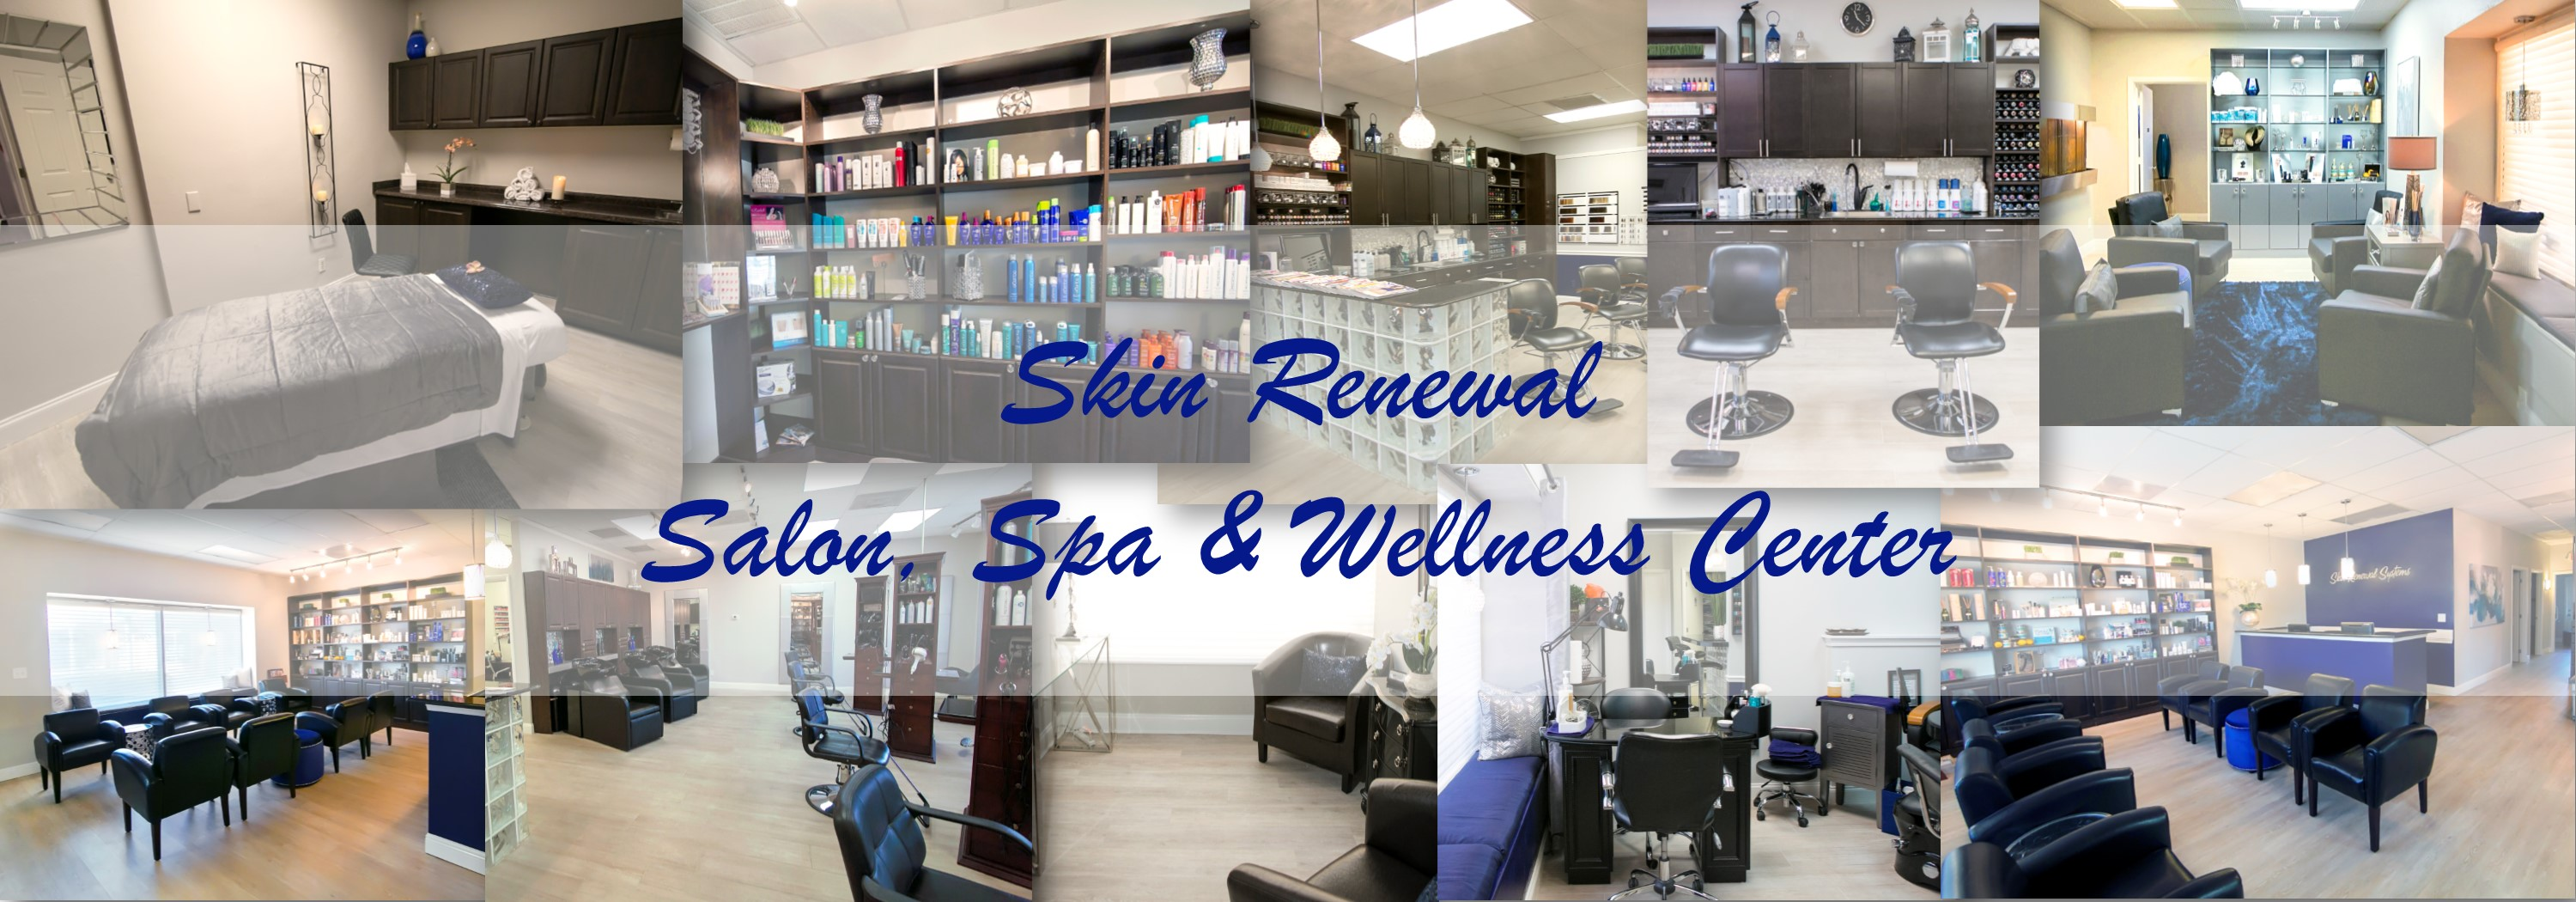 Skin Renewal Systems Salon, Spa, and Wellness Center. Call 239-394-1083 for an Appointment